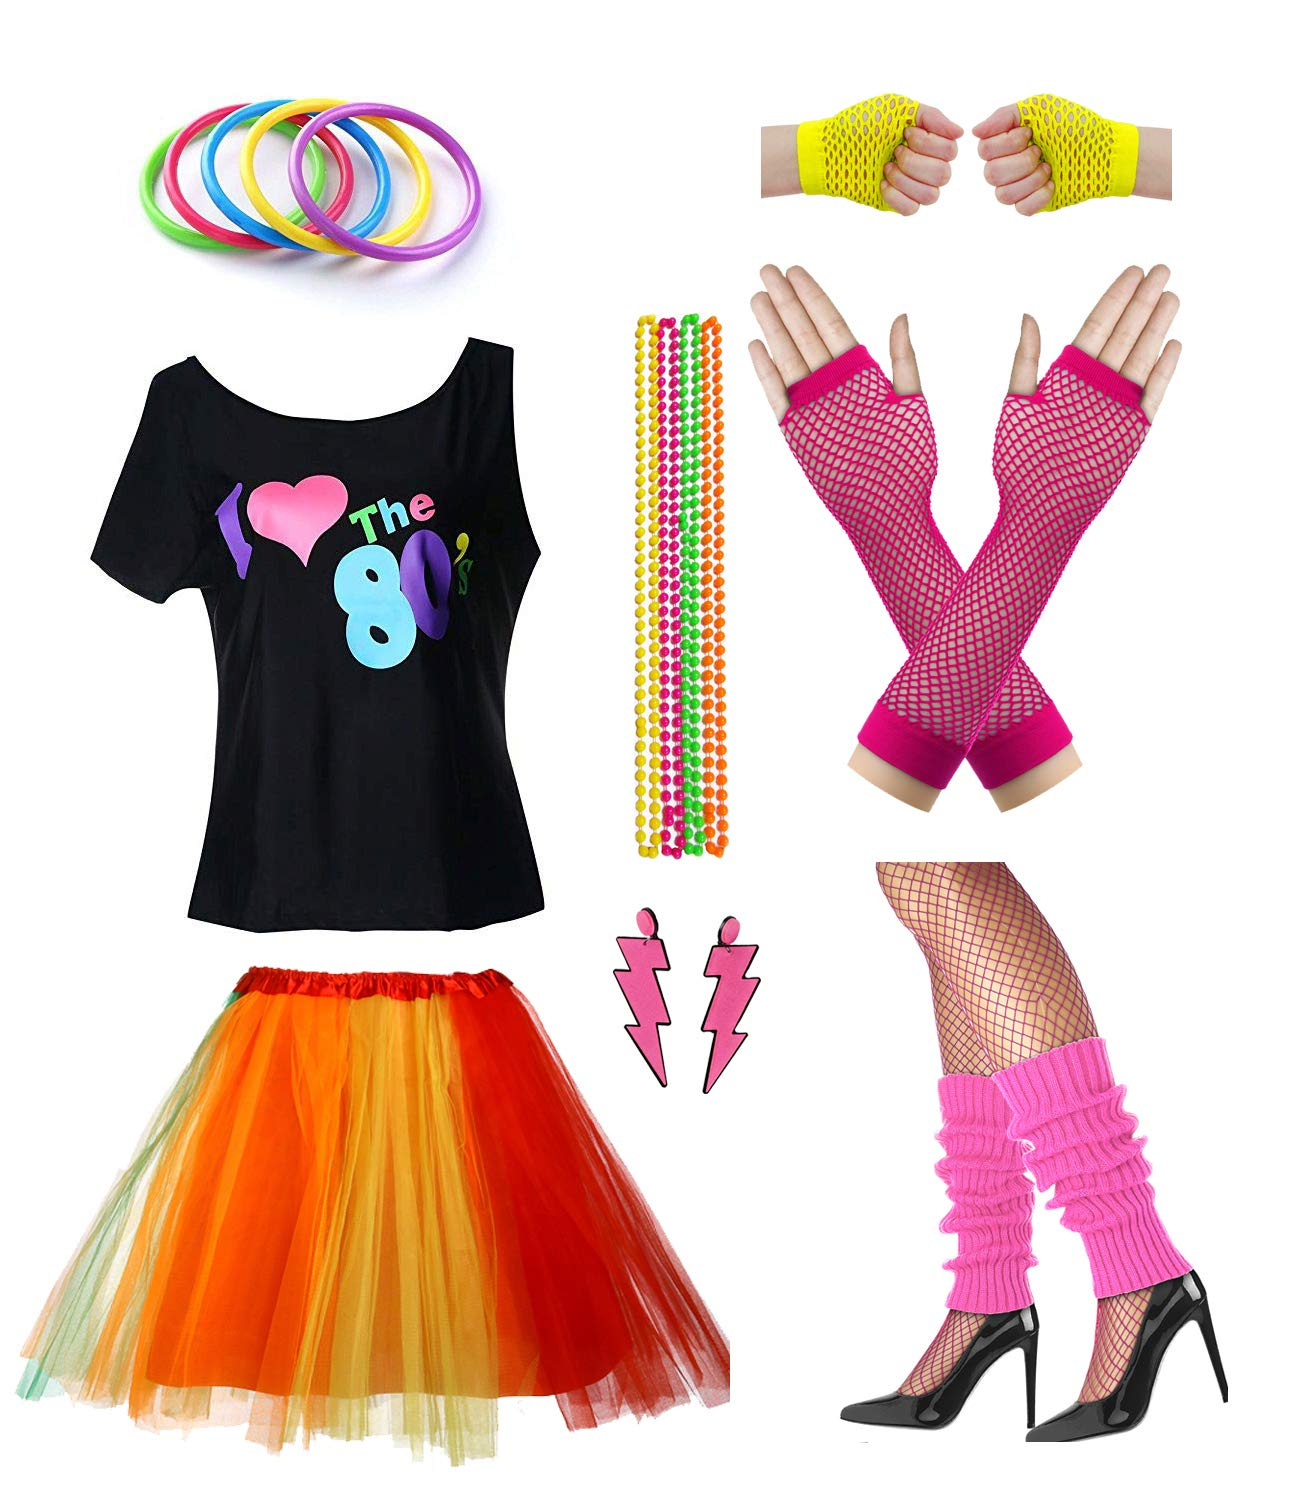 Women I Love The 80's Disco 80s Costume Outfit Accessories Set (M/L, Color)